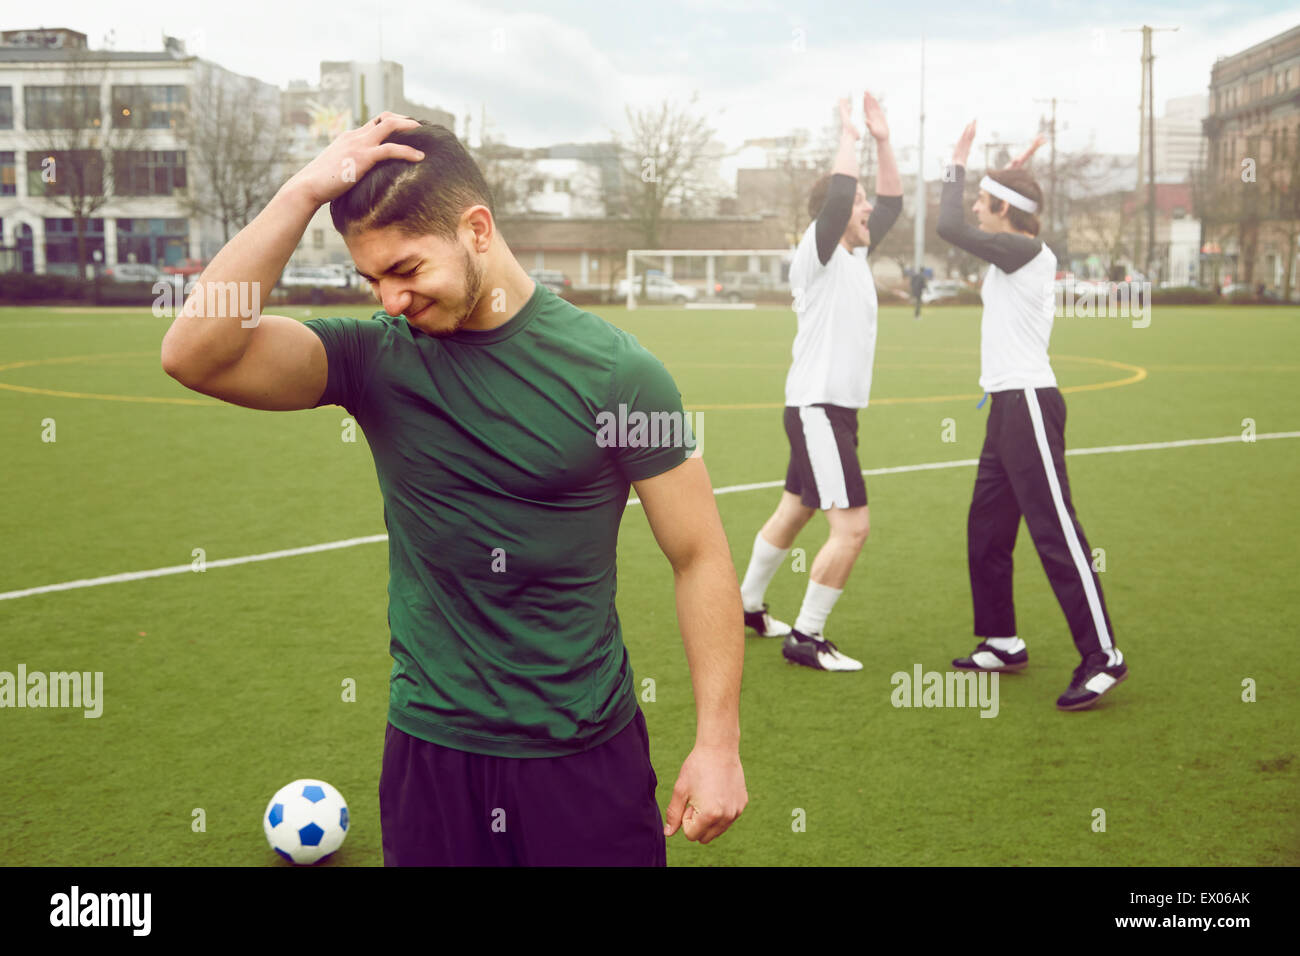 Disappointed male soccer player with hand in hair on soccer pitch - Stock Image